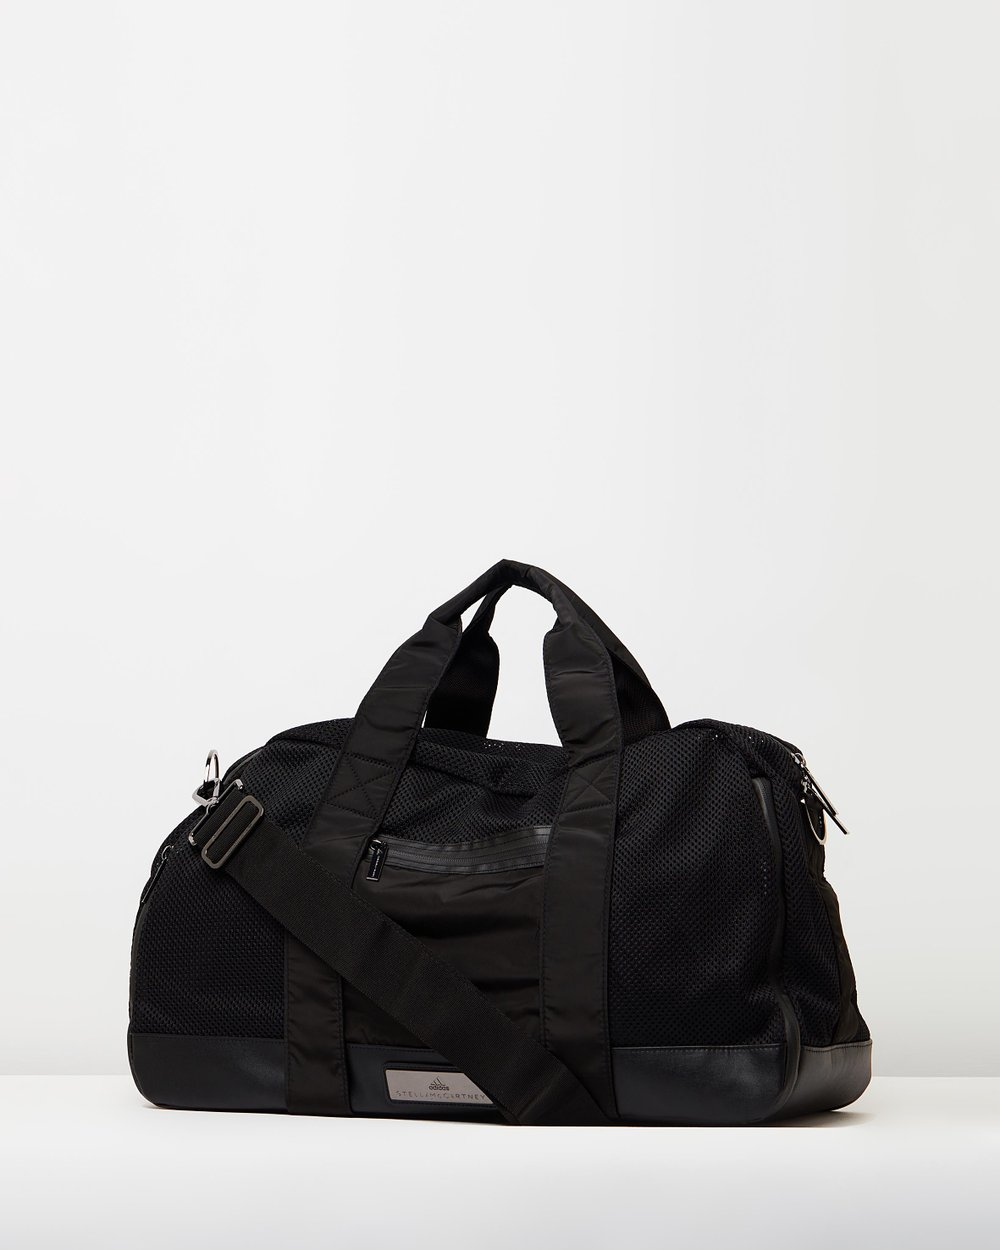 Yoga Bag Medium by adidas by Stella McCartney Online   THE ICONIC    Australia 5681098107